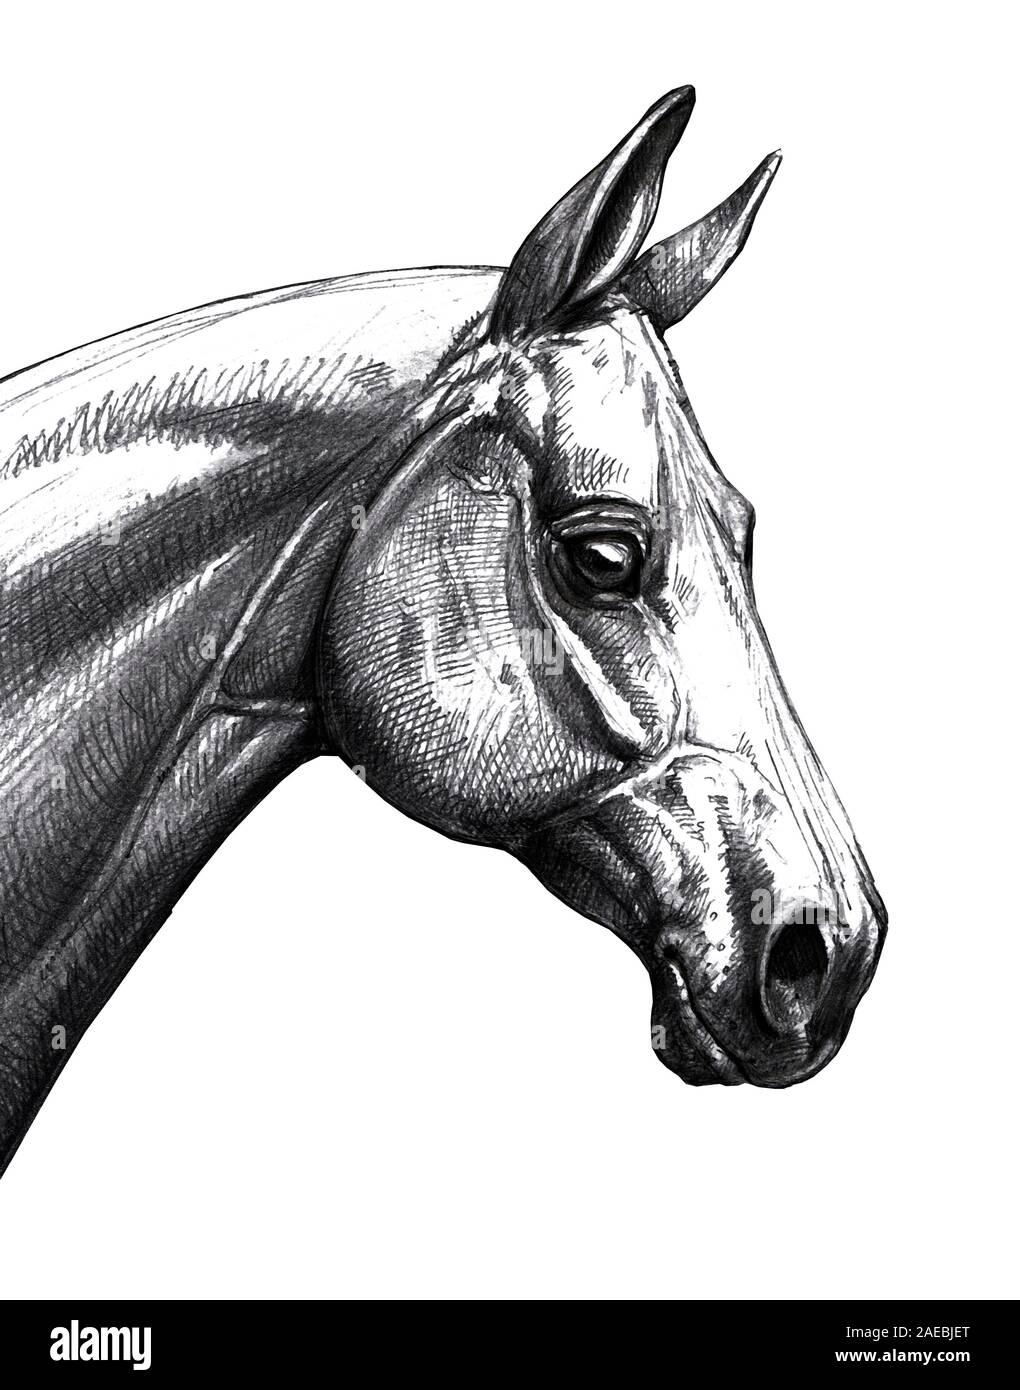 Horse Head Illustration Pencil Portrait Of A Horse Equine Drawing Stock Photo Alamy